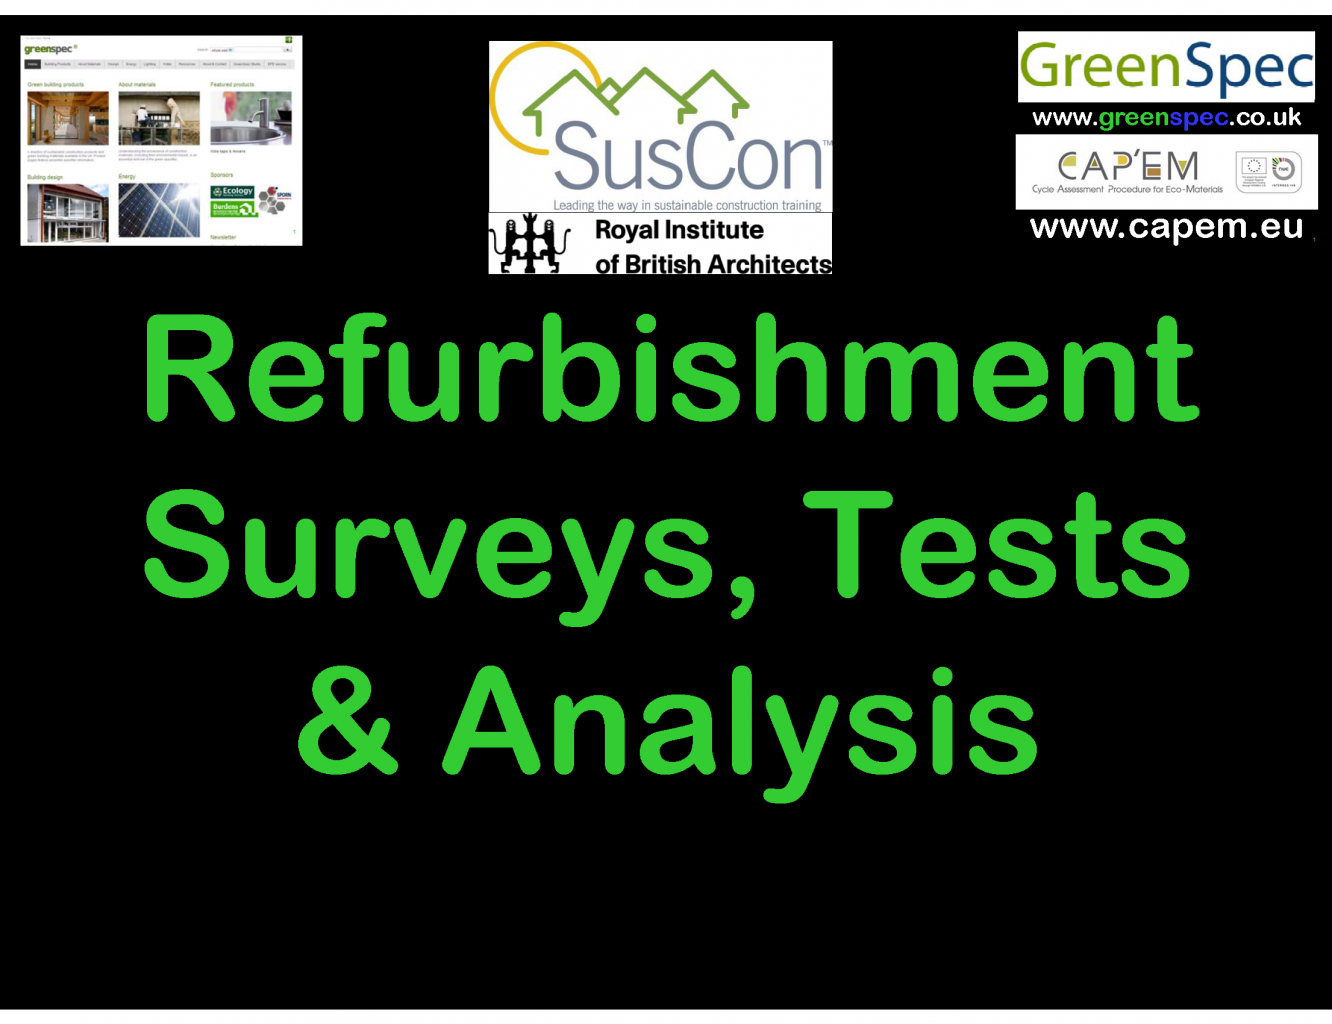 RefurbishmentSurveysTests_Page_2